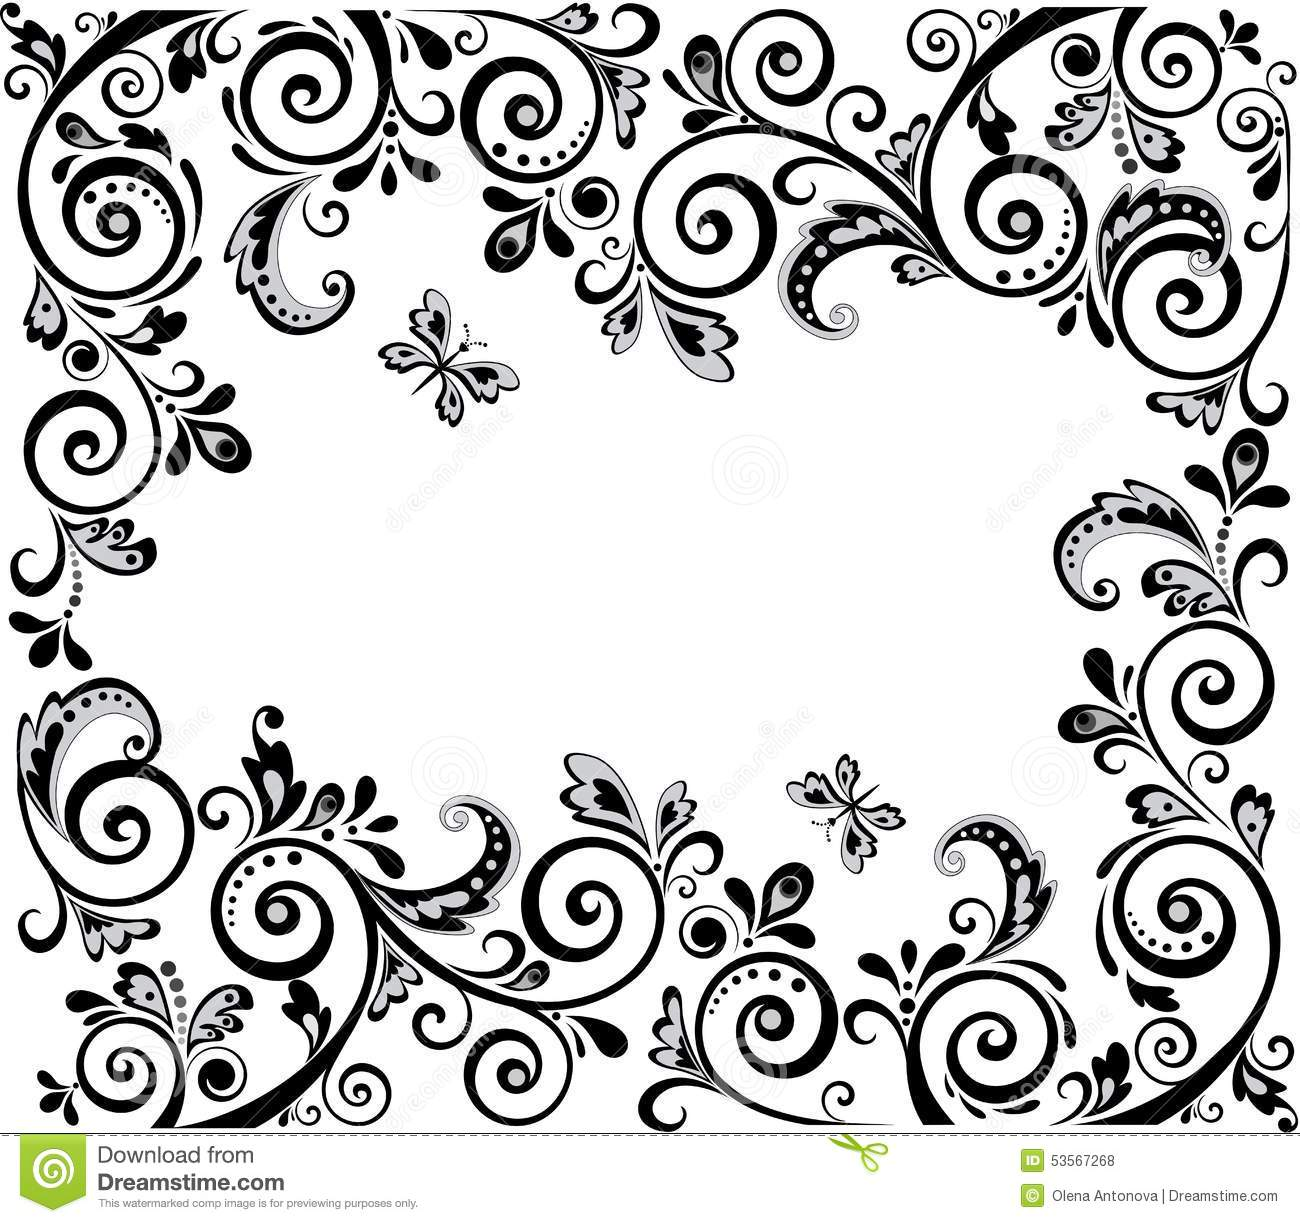 Vintage Design Black And White Stock Vector Illustration Of